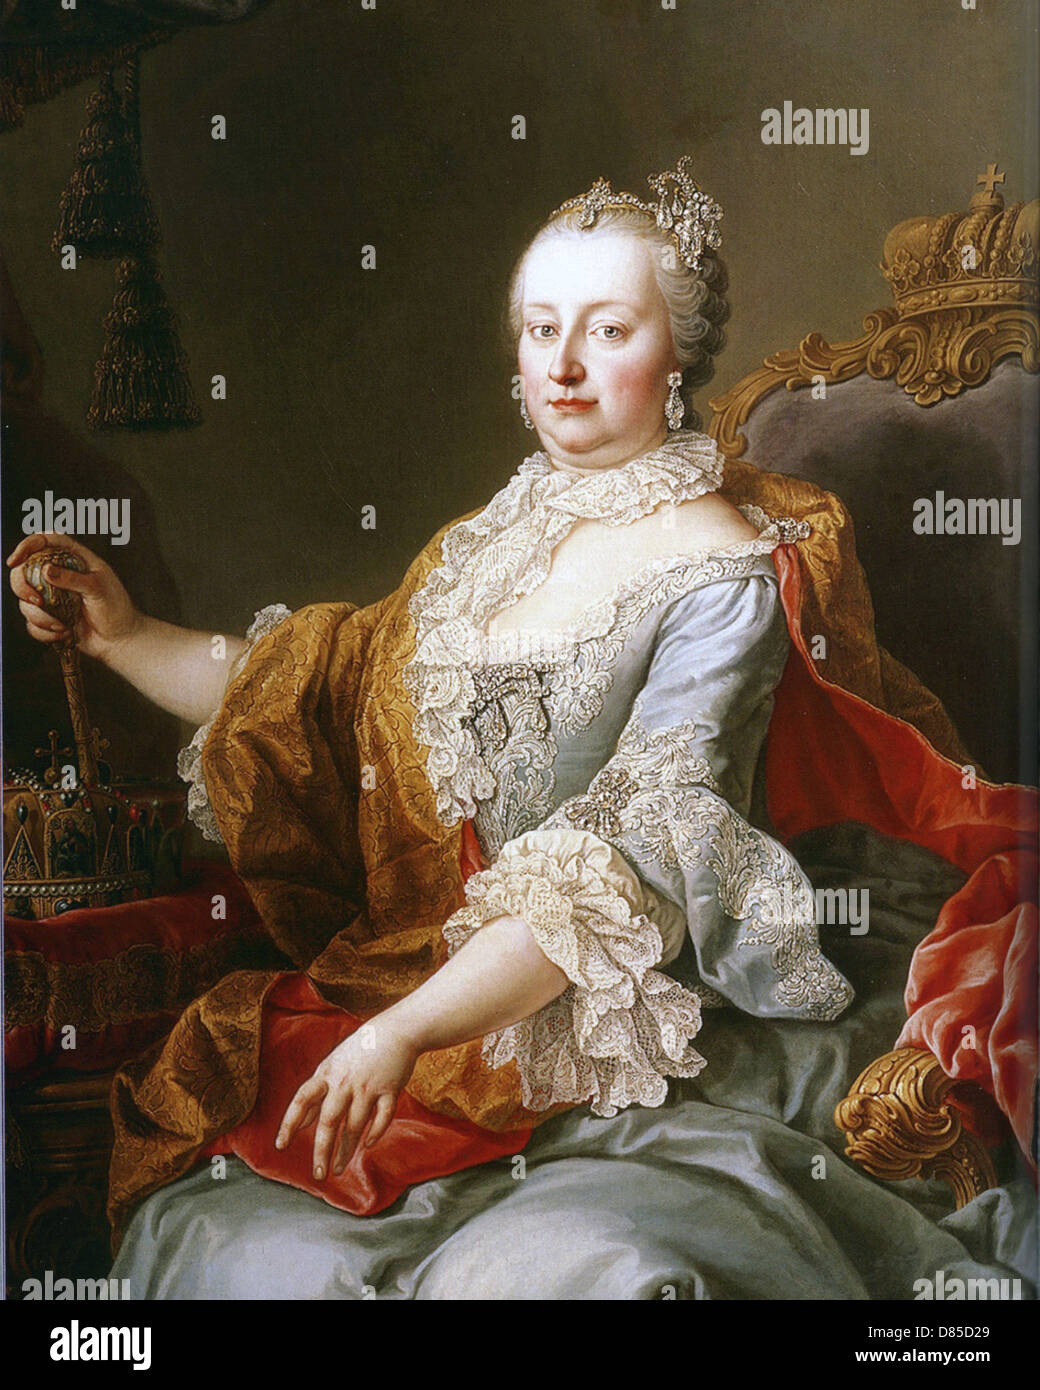 MARIA THERESA (1717-1780) only female ruler of the Habsburg empire painted in 1759 - Stock Image